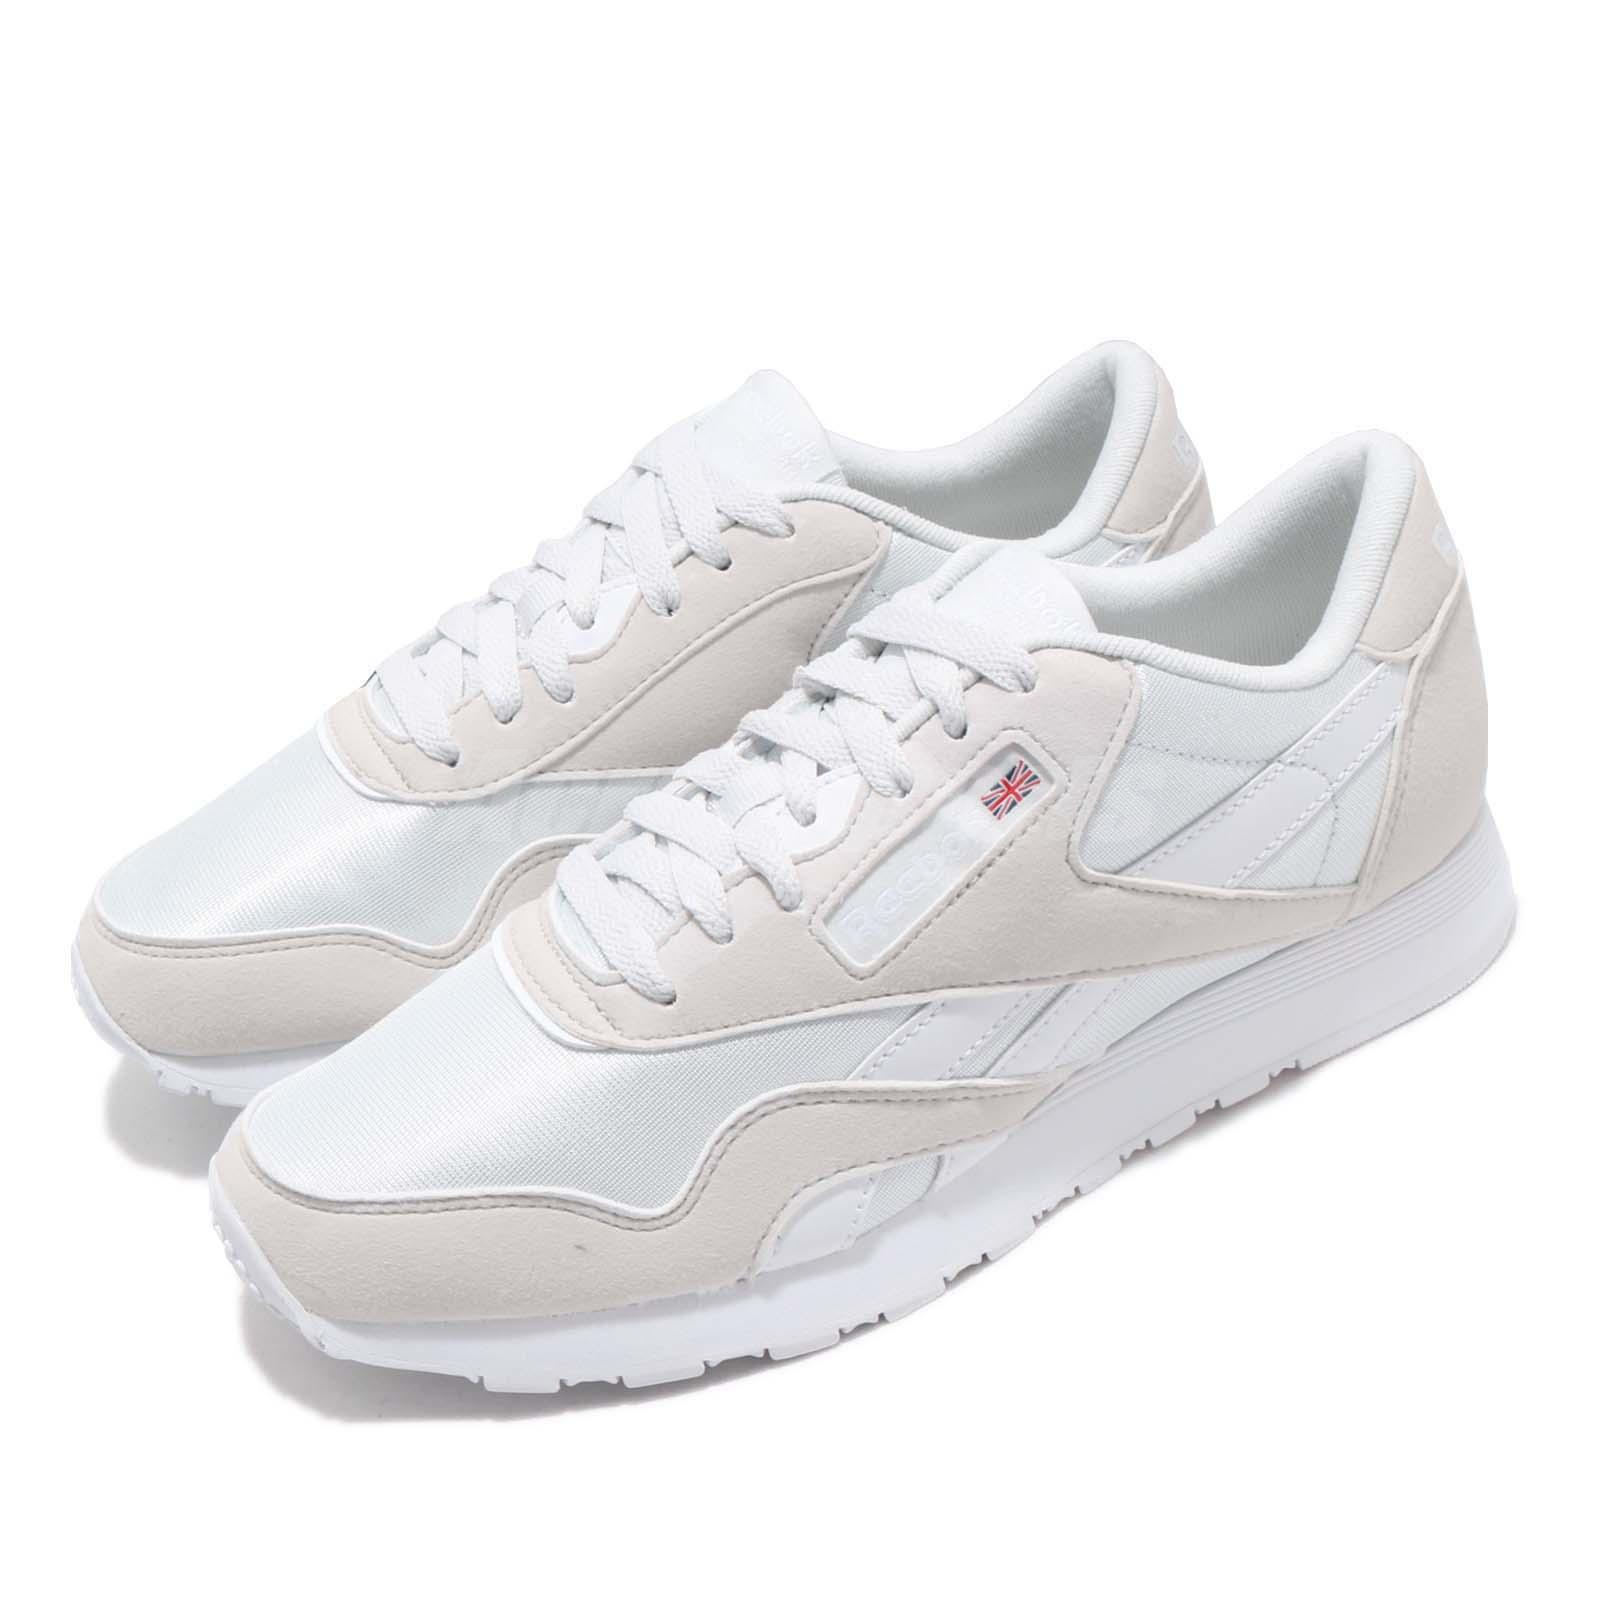 Details about Reebok CL Nylon Color Grey White Mens Womens Classic Running Shoes CN7448